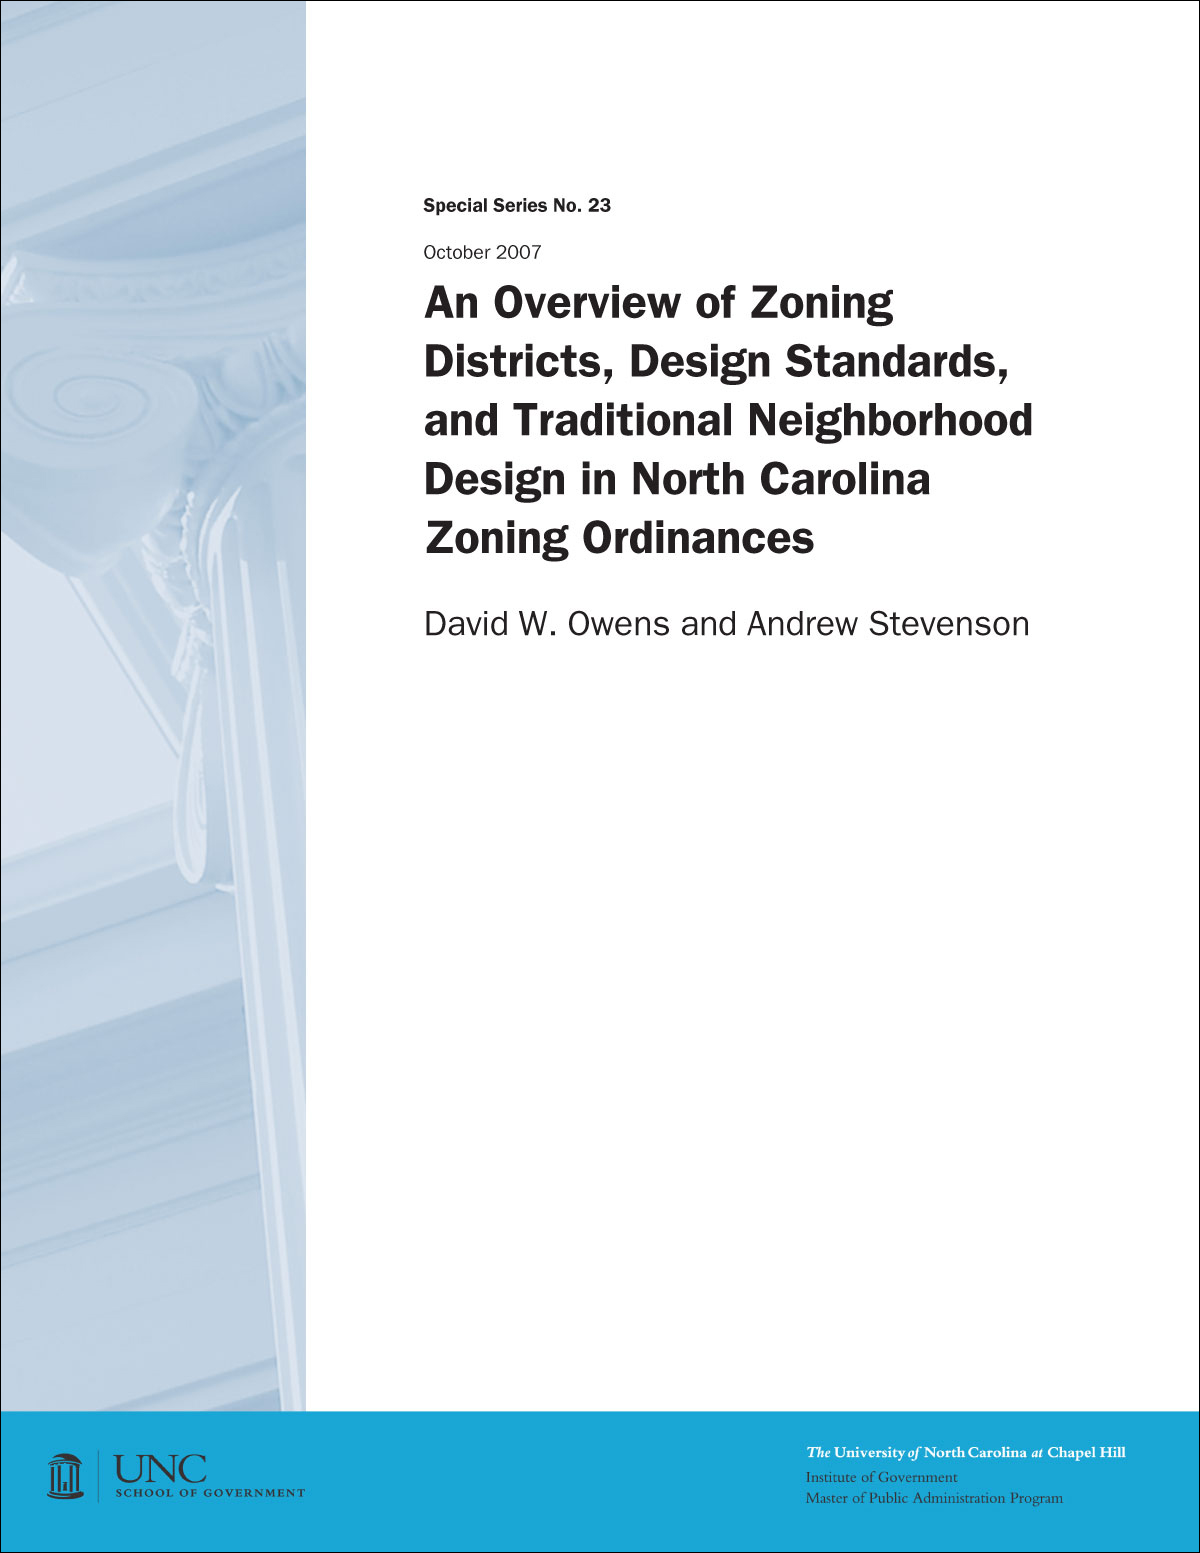 An Overview of Zoning Districts, Design Standards, and Traditional Neighborhood Design in North Carolina Zoning Ordinances, Special Series No. 23, October 2007